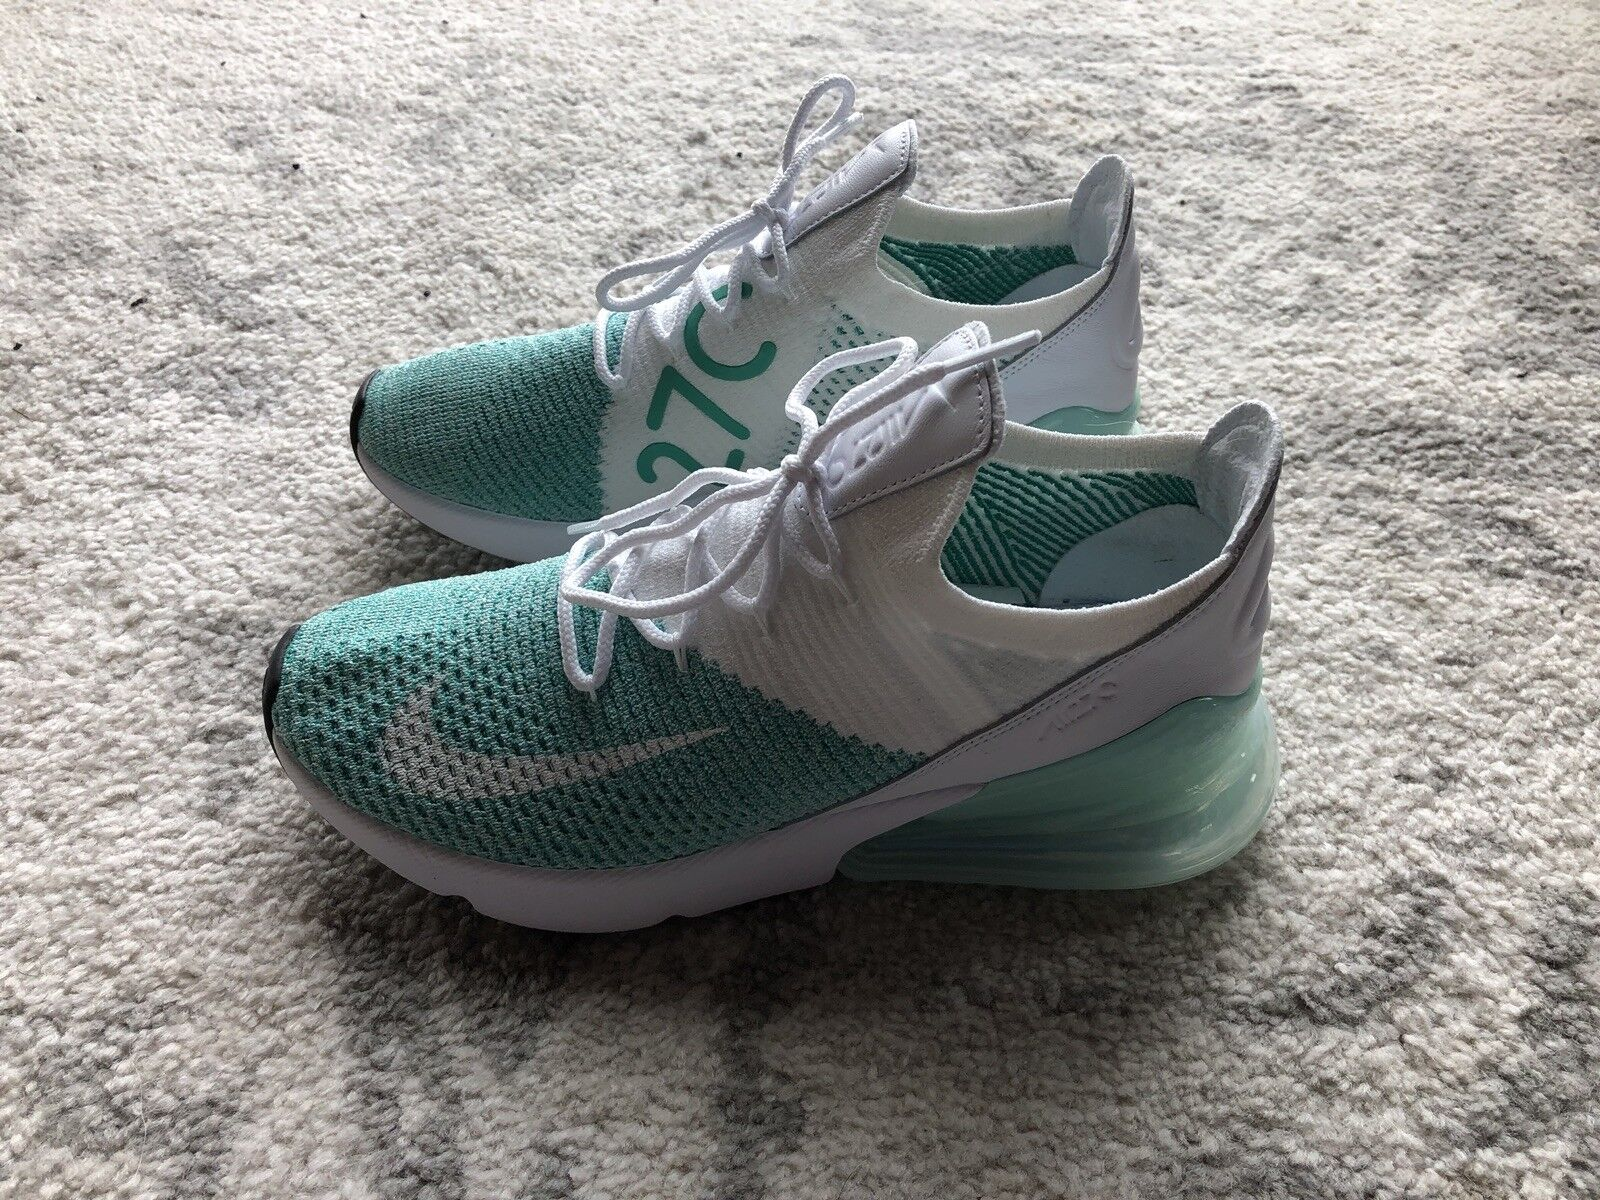 2500eb955e30 Nike Air Max 270 270 270 Flyknit Women s Running Shoes Igloo White AH6803- 301 Size 7.5 bba9be